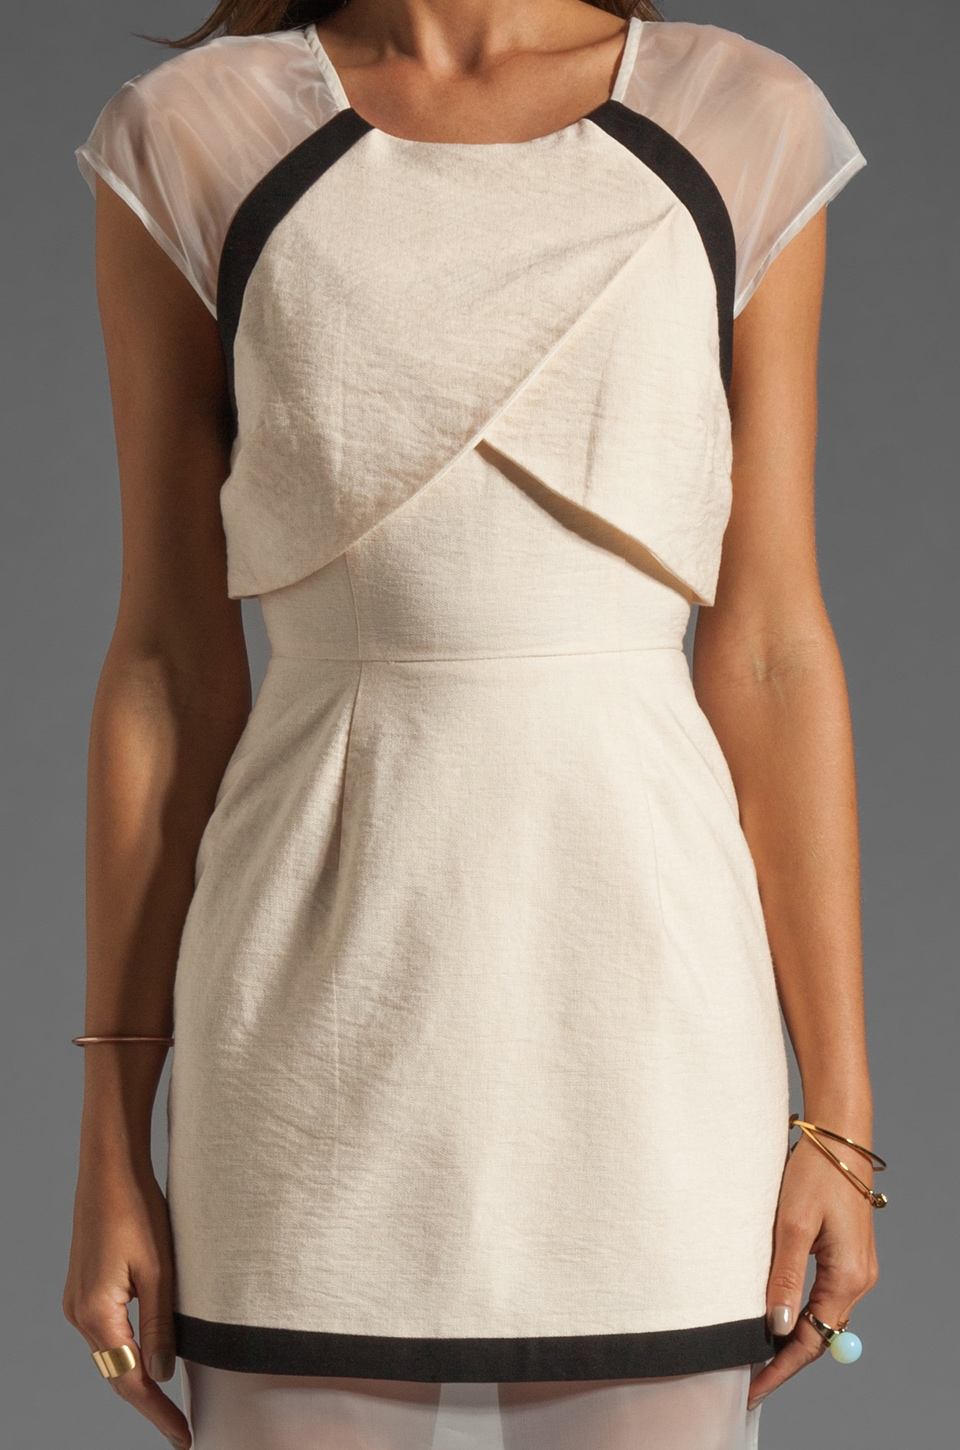 C/MEO Day One Dress in Shell